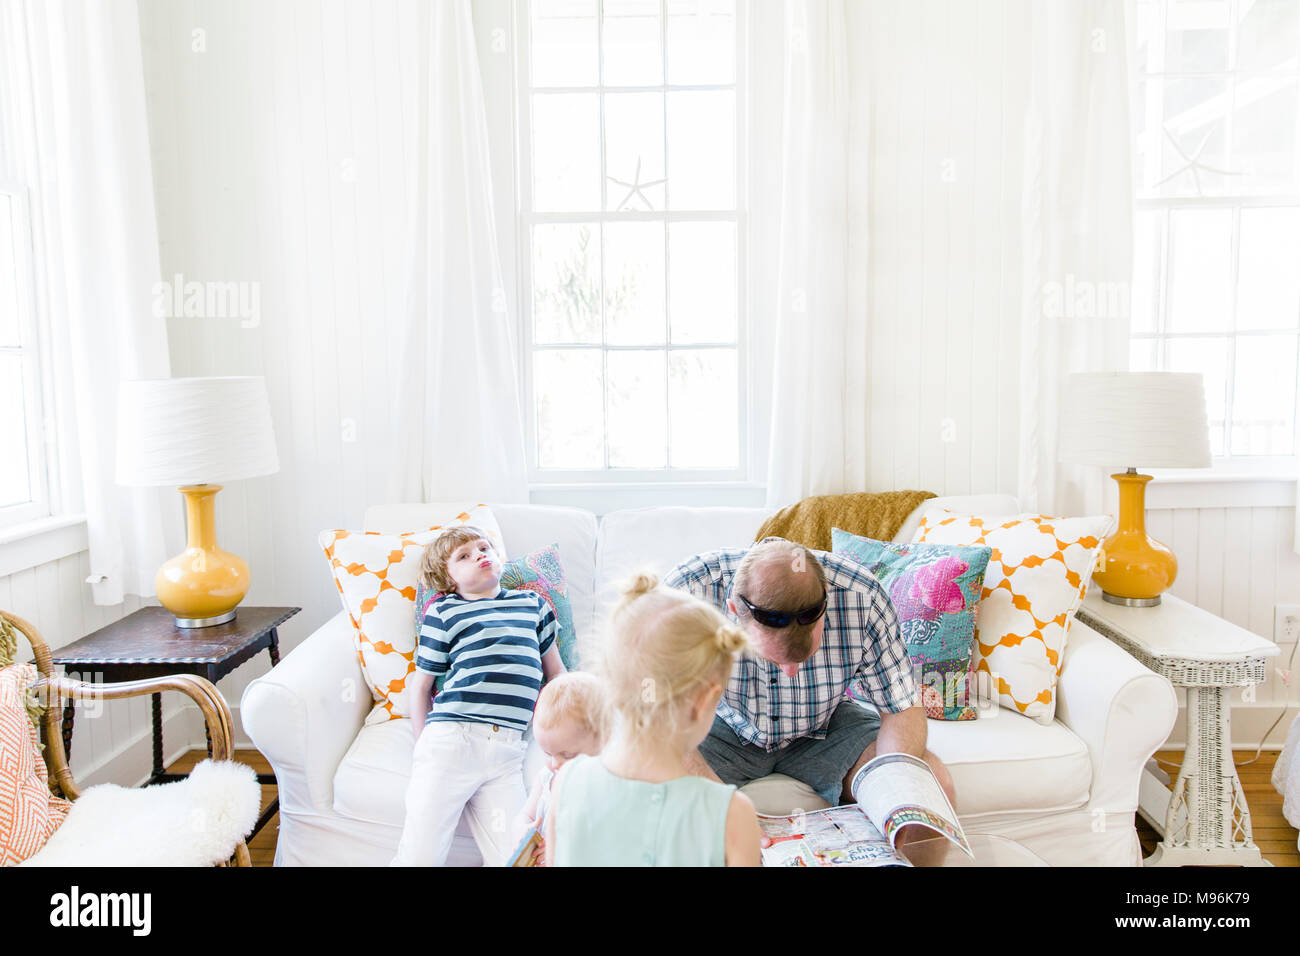 Man reading on sofa with children around him - Stock Image